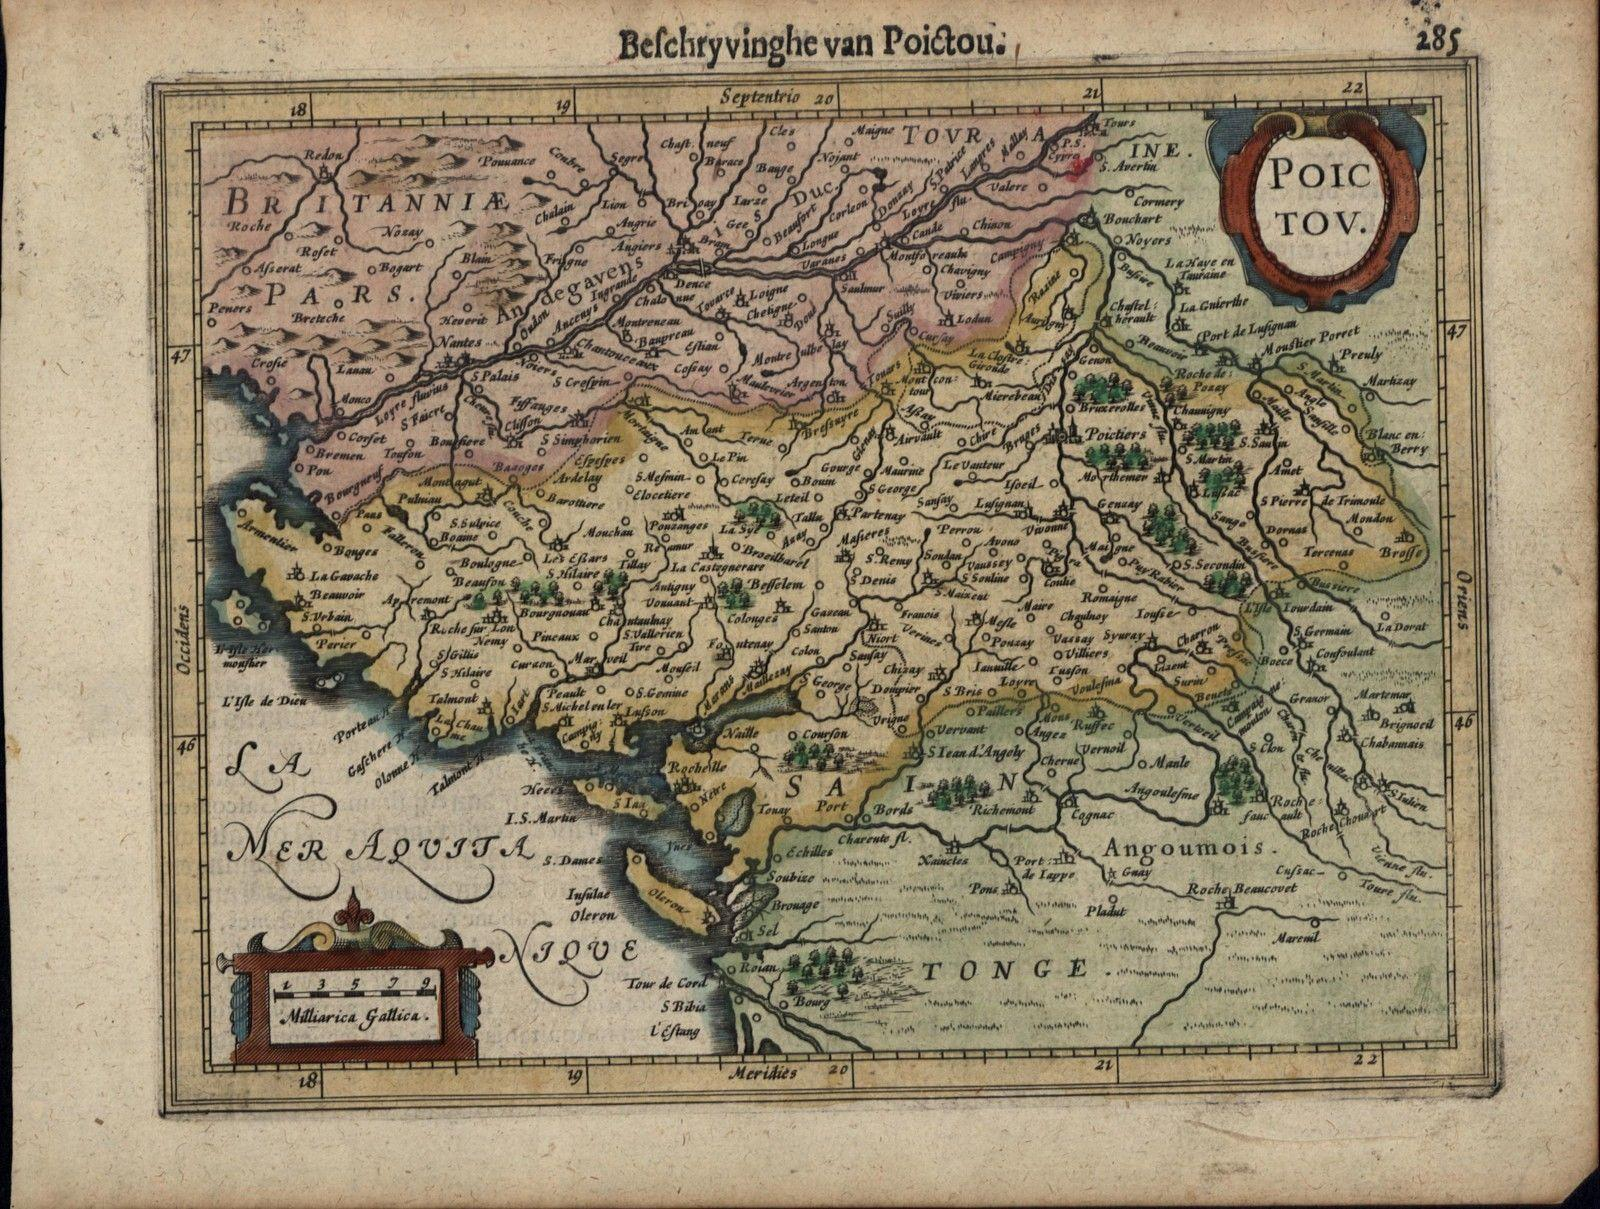 Poitou France Map.Poitou Poictou Western France Bay Of Biscay C 1628 Mercator Minor